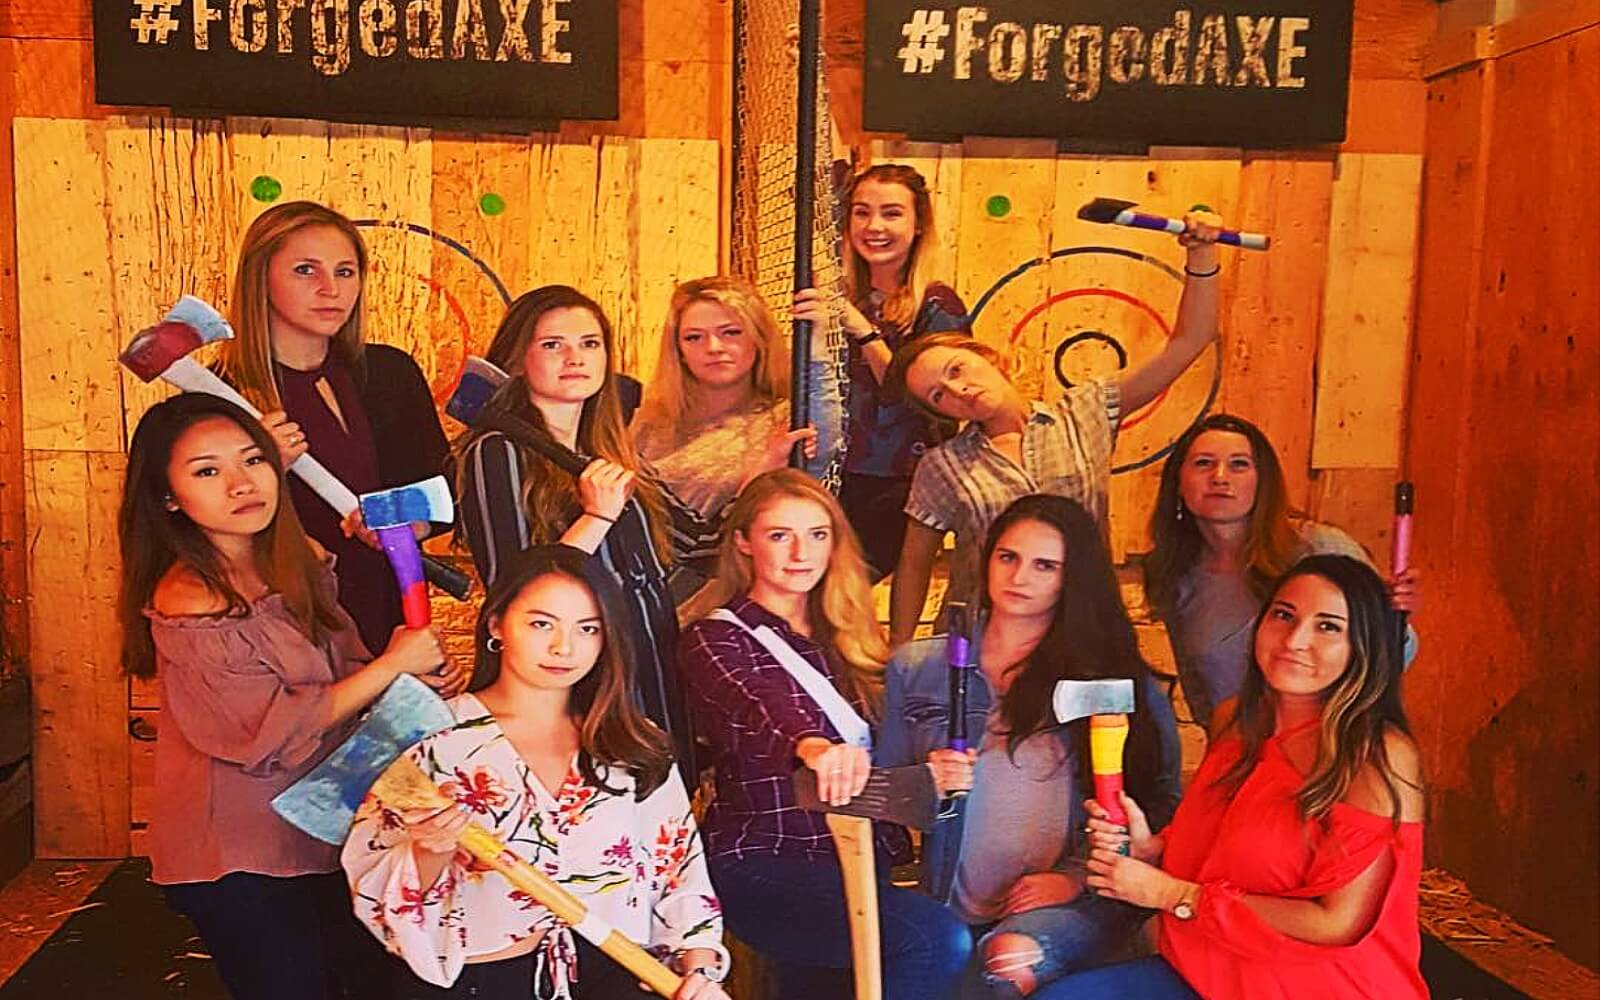 A group of woman pose after a axe throwing contest